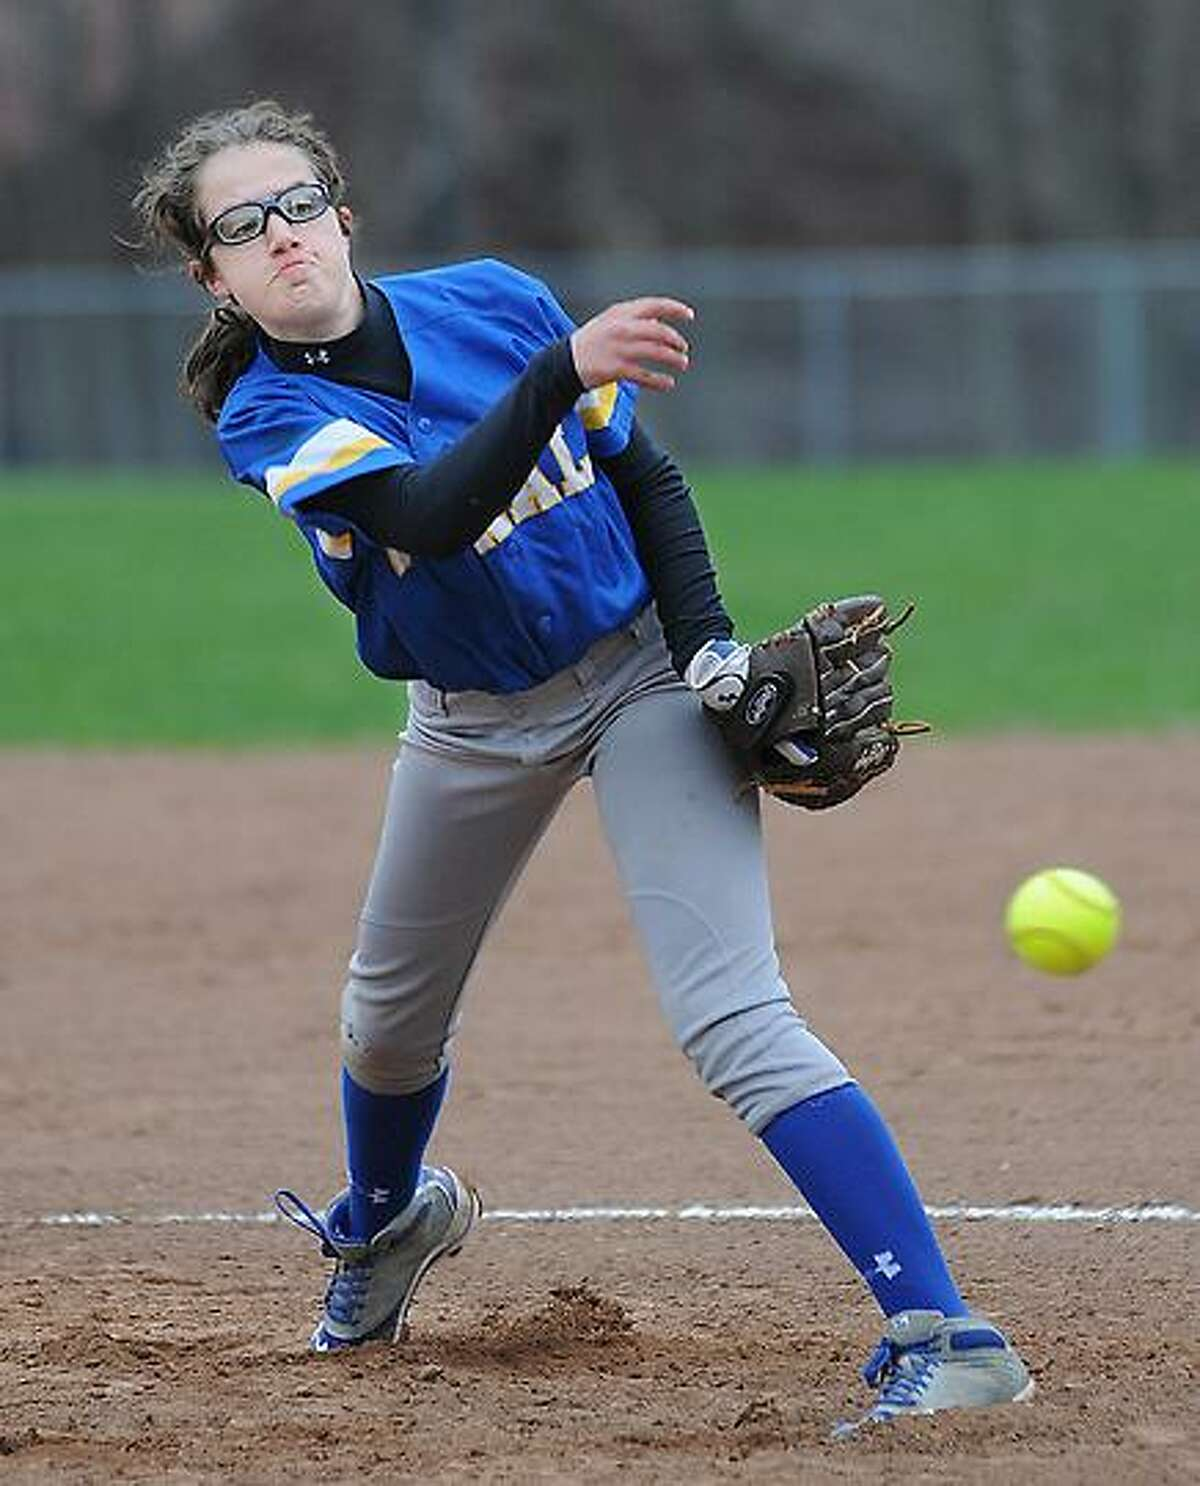 Catherine Avalone/The Middletown Press Vinal Tech freshman pitcher Hannah Bibisi on the mound against Whitney Tech Tuesday afternoon in Middletown. Vinal Tech defeated Whitney Tech 26-2.